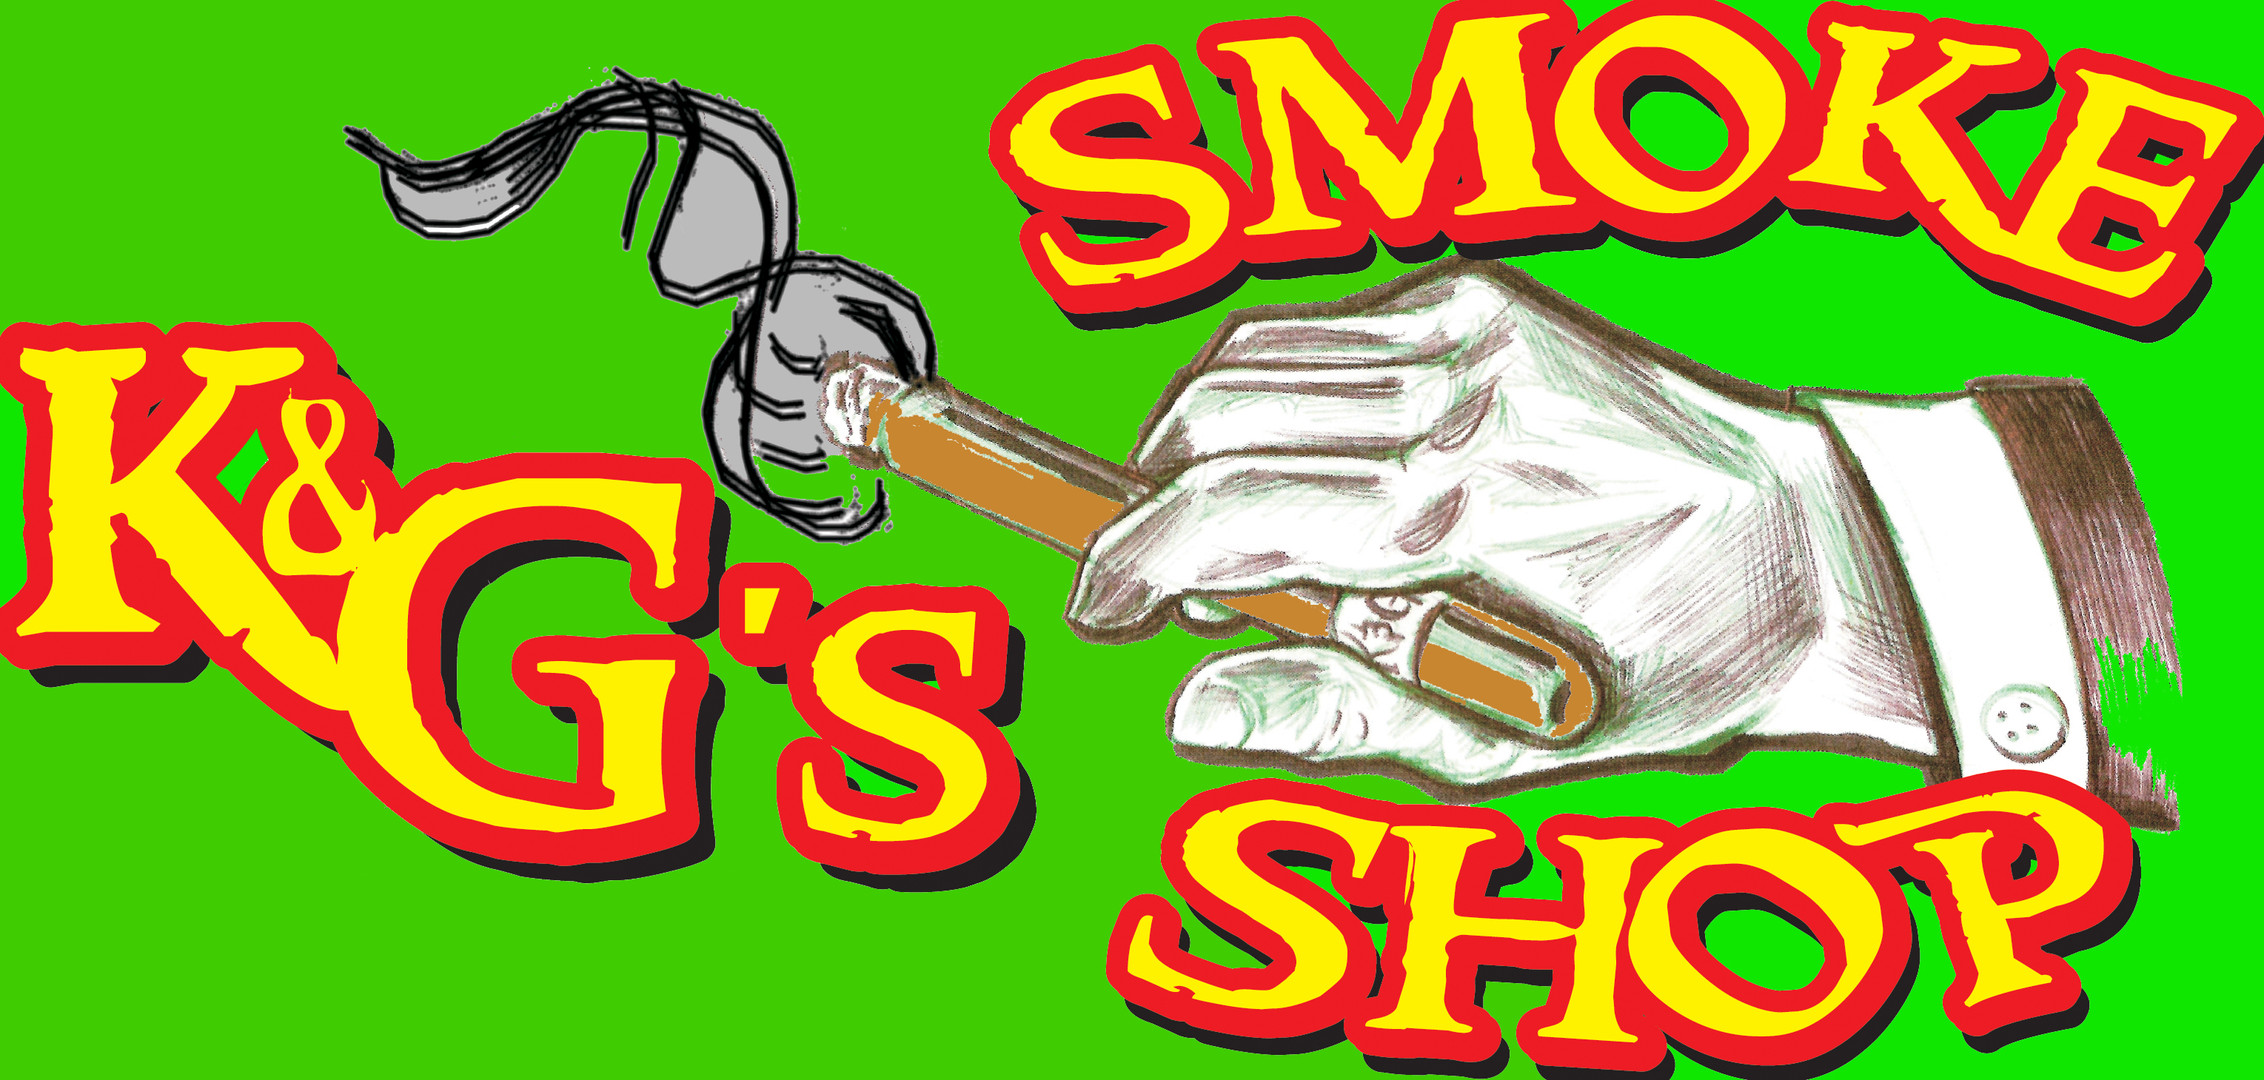 K & G SMOKE SHOP_logo.jpg